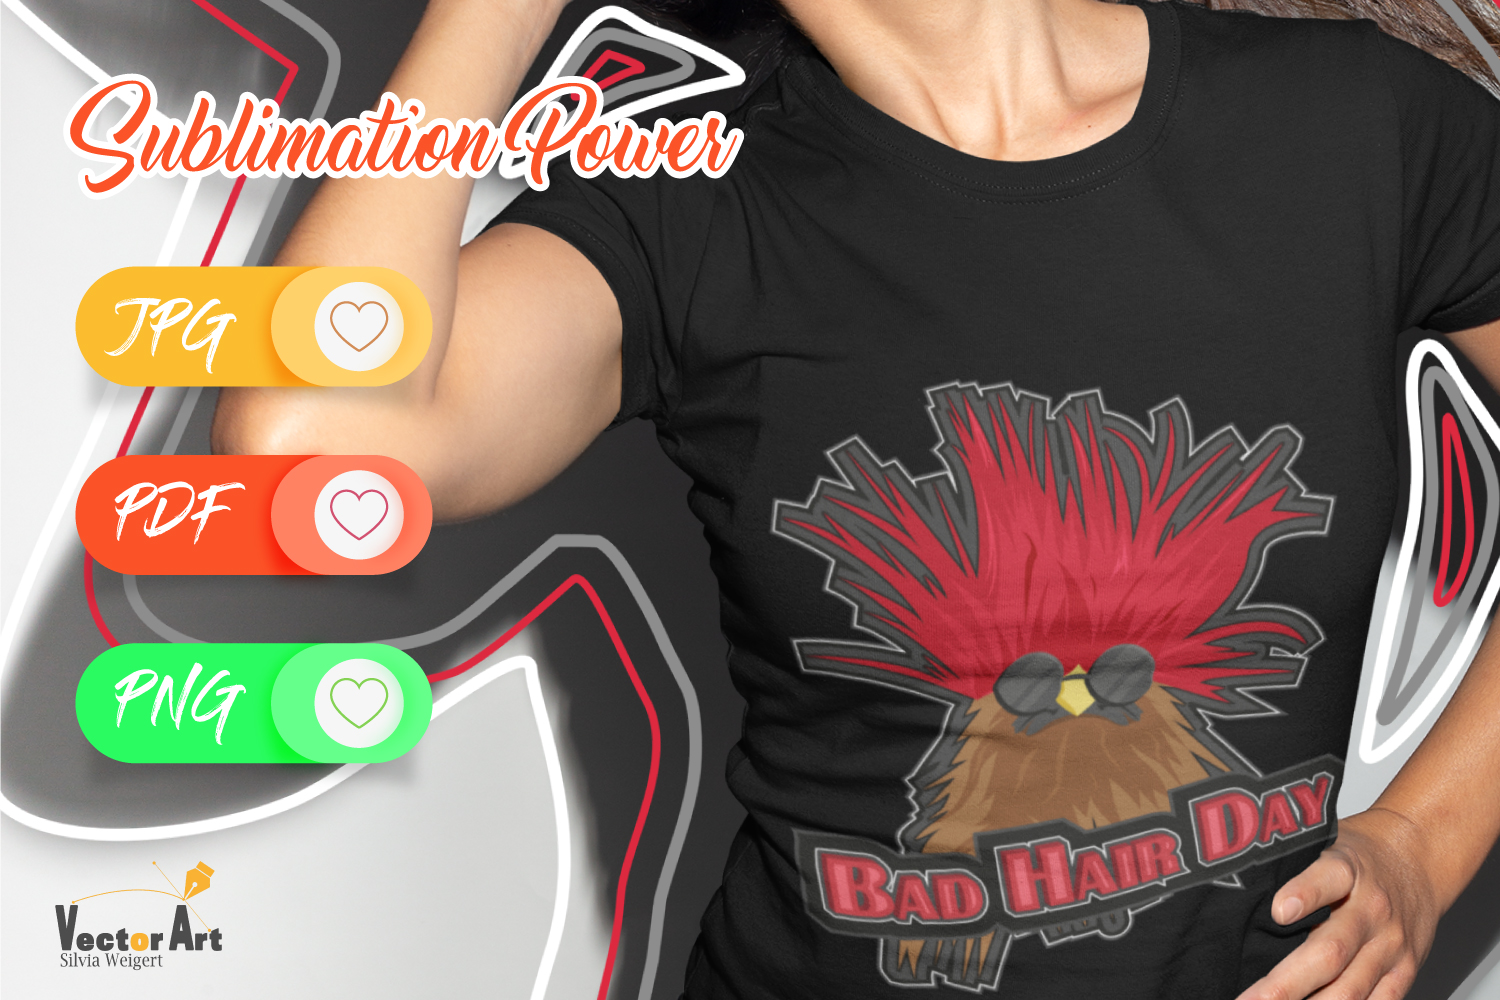 Bad Hair Day - Sublimation File for Crafter example image 2